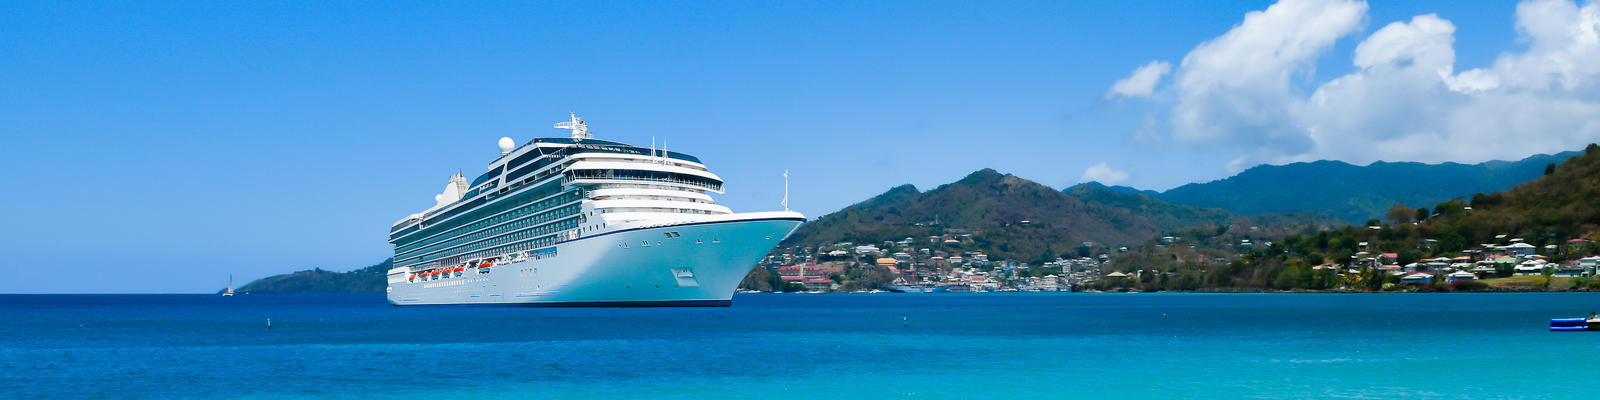 Cruise ship in the Caribbean (Photo: NAPA/Shutterstock.com)